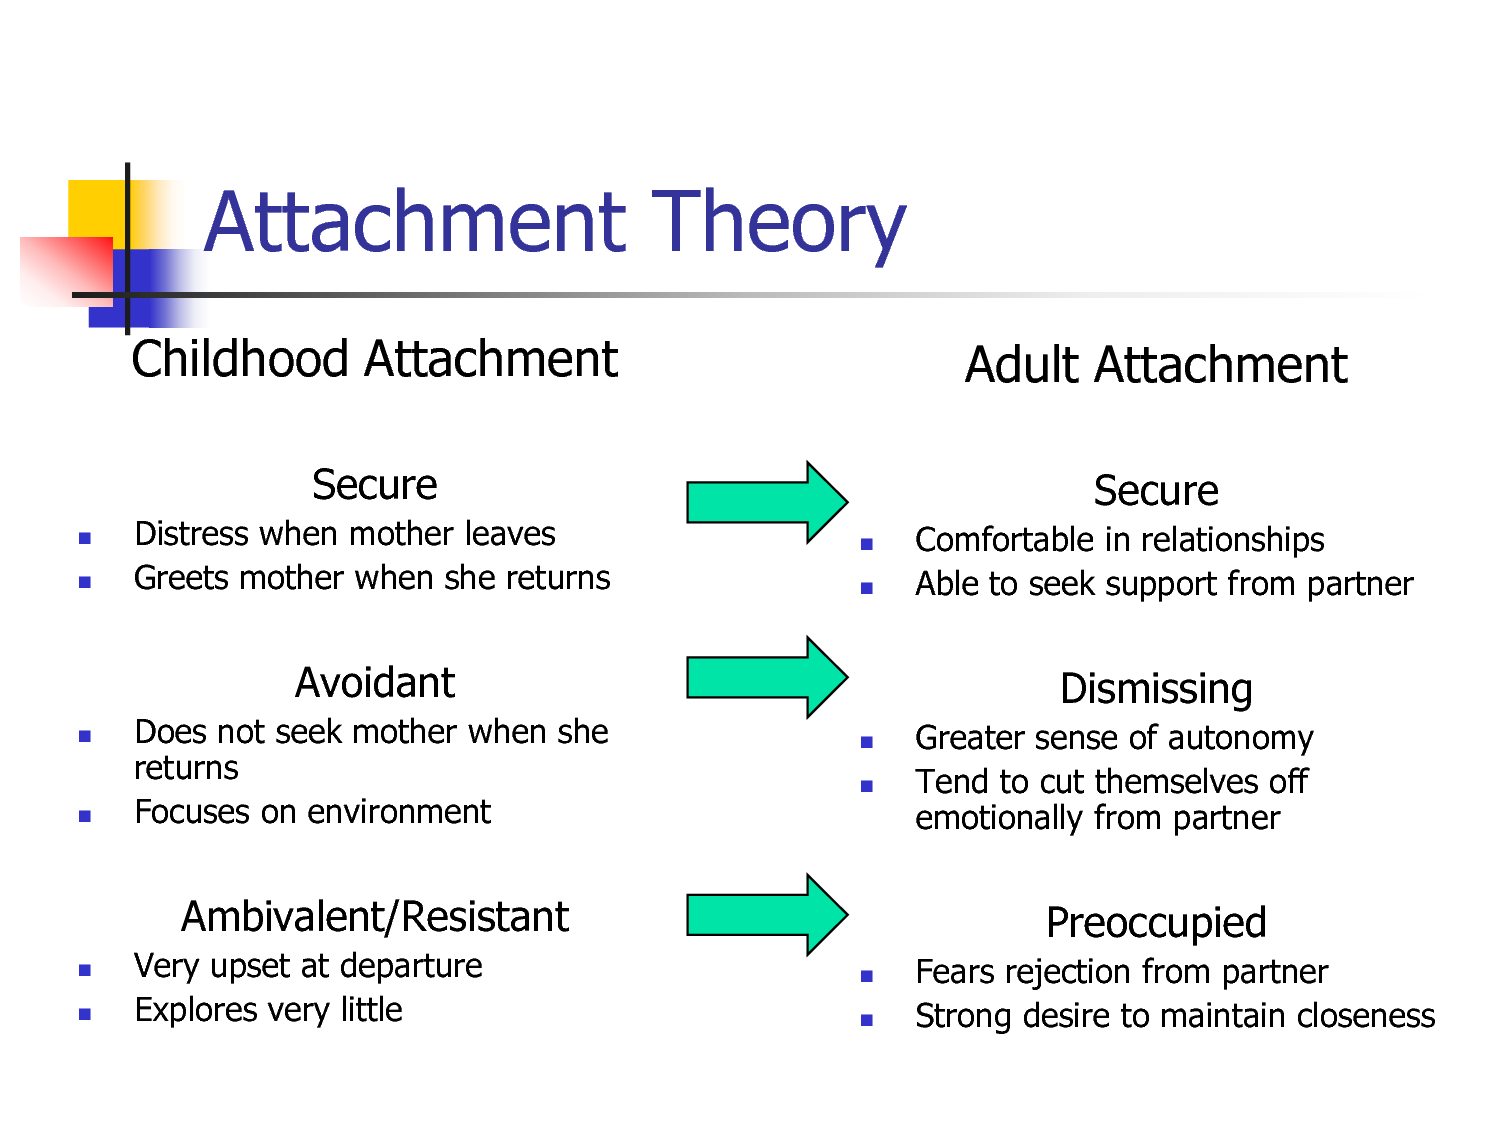 attachment styles and relationships essay With implications for counseling christian clients duane f reinert that the attachment styles exhibited in relation to significant persons in and, therefore, various relationship-specific attachment styles may be profitably explored as they relate to religion kirkpatrick.